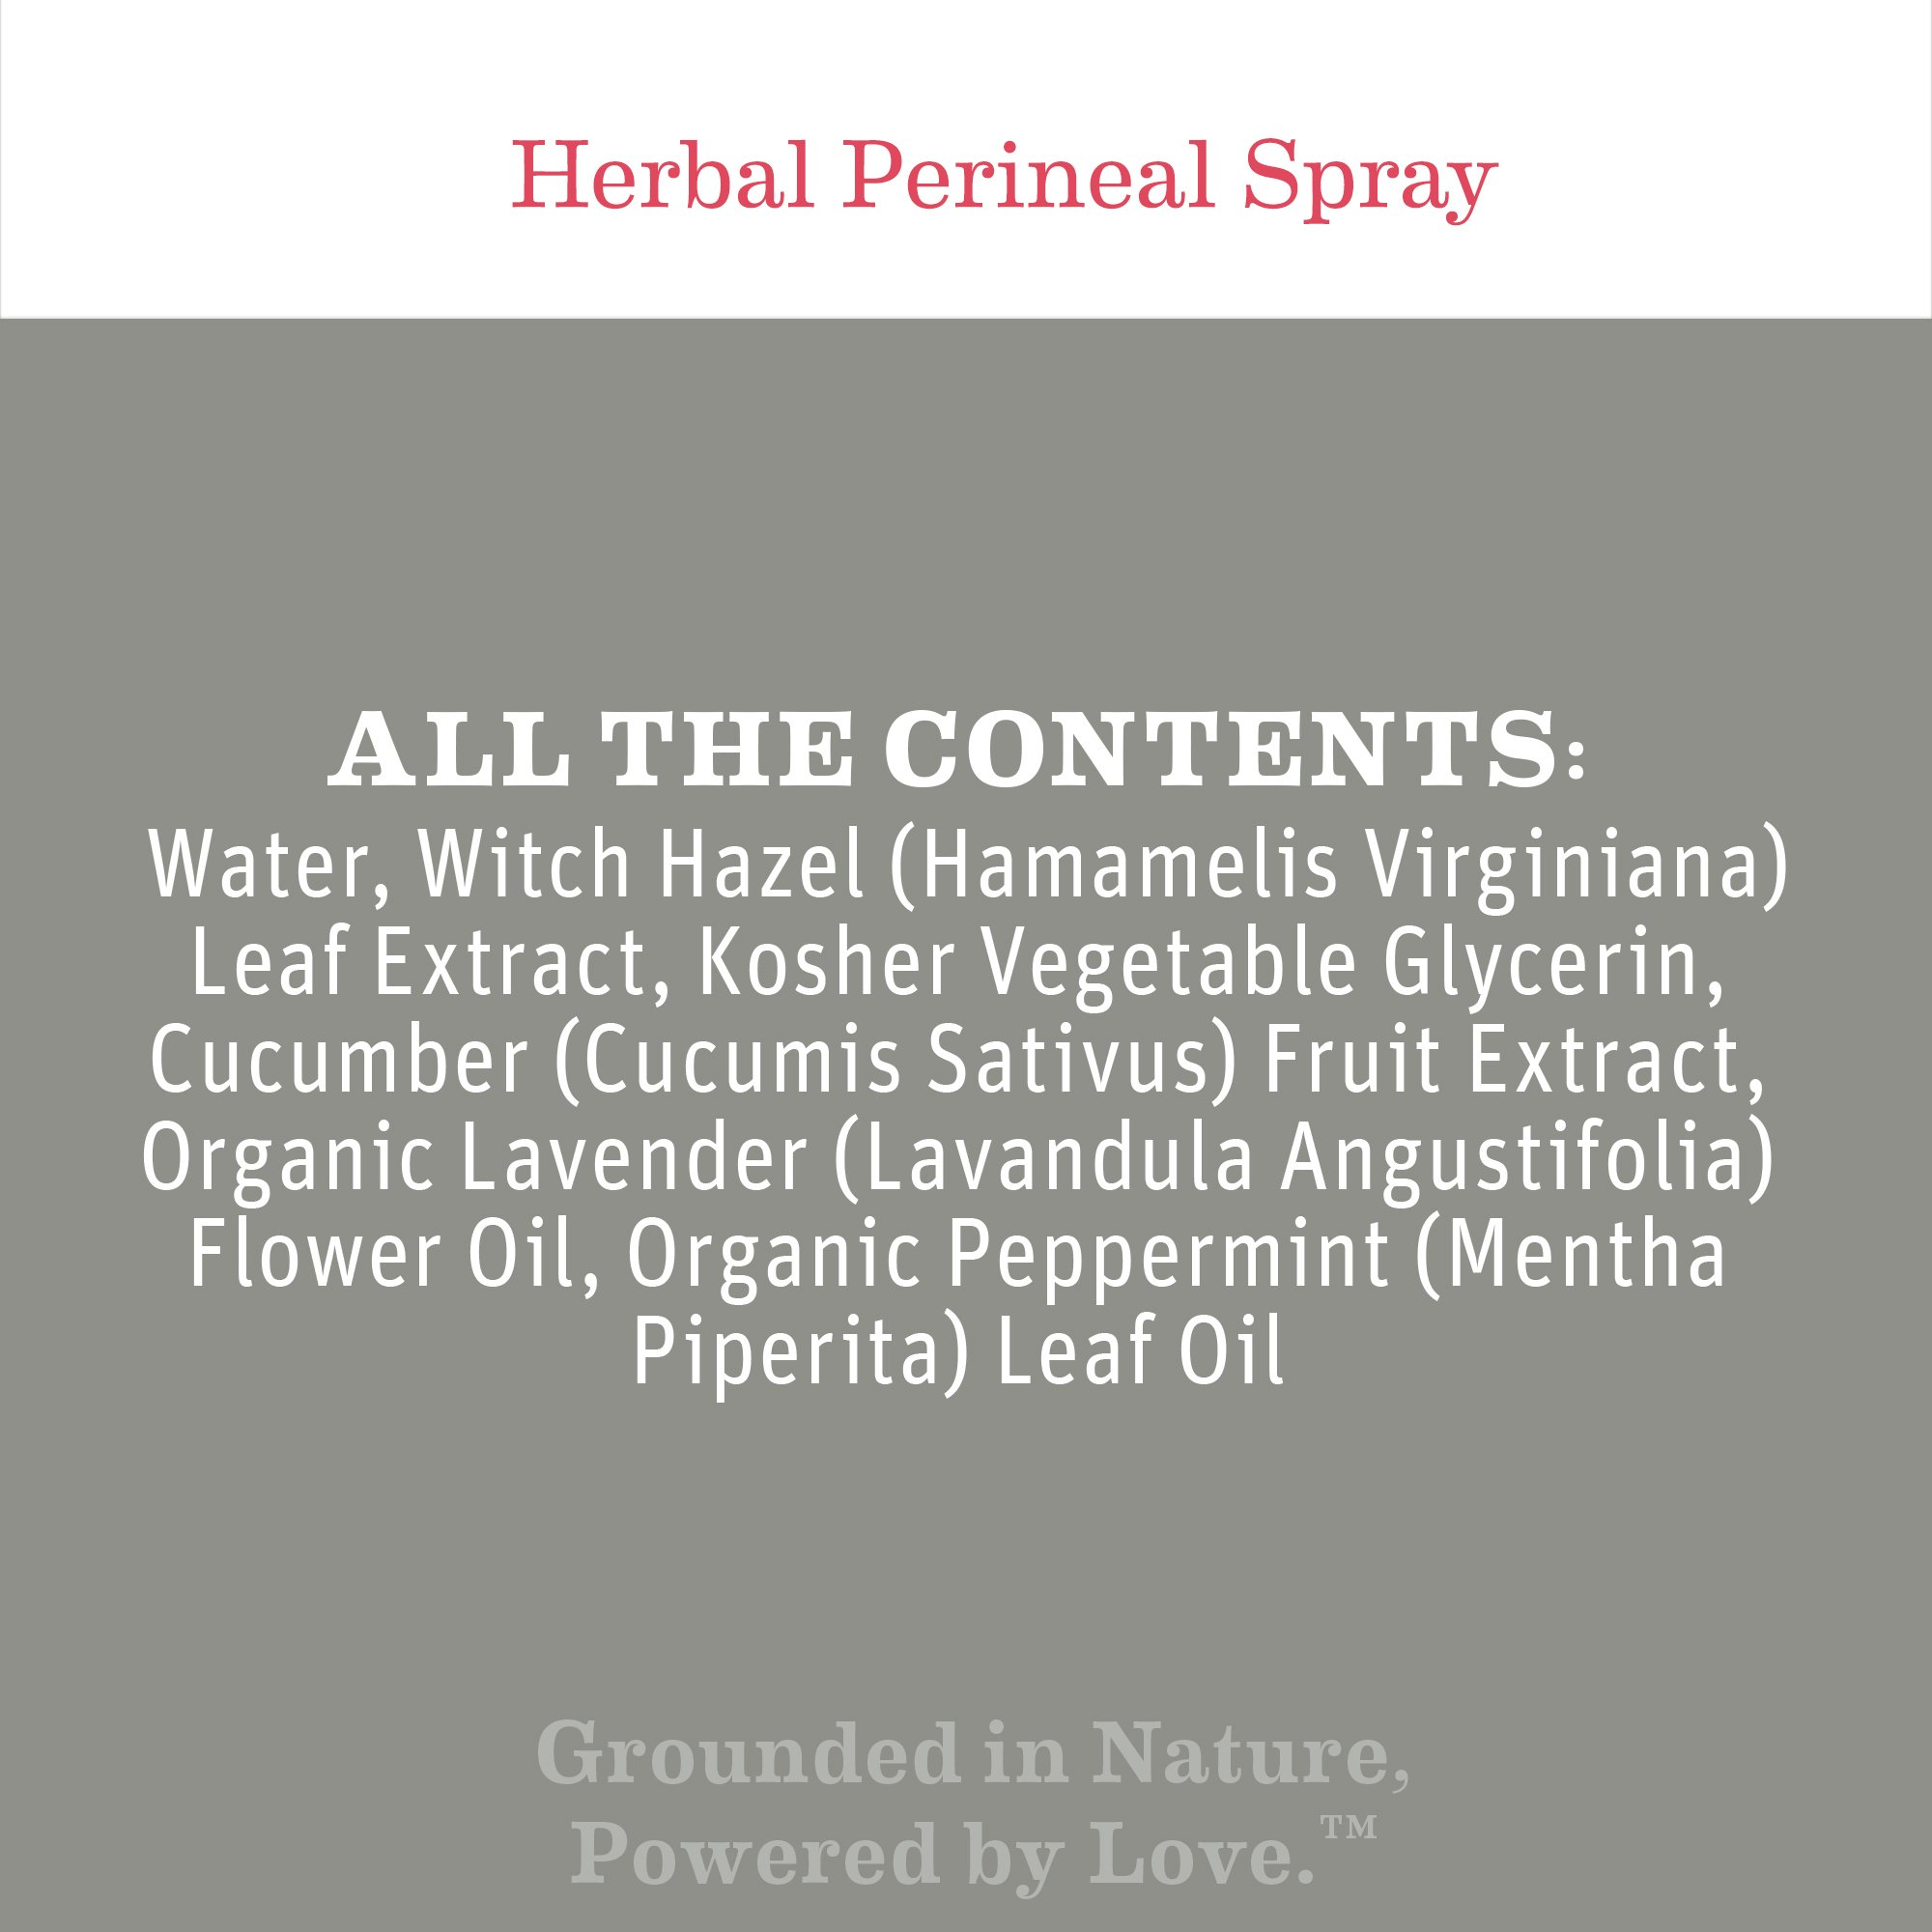 Earth Mama Herbal Perineal Spray for Pregnancy and Postpartum, 4-Fluid Ounce (2-Pack) by Earth Mama (Image #2)